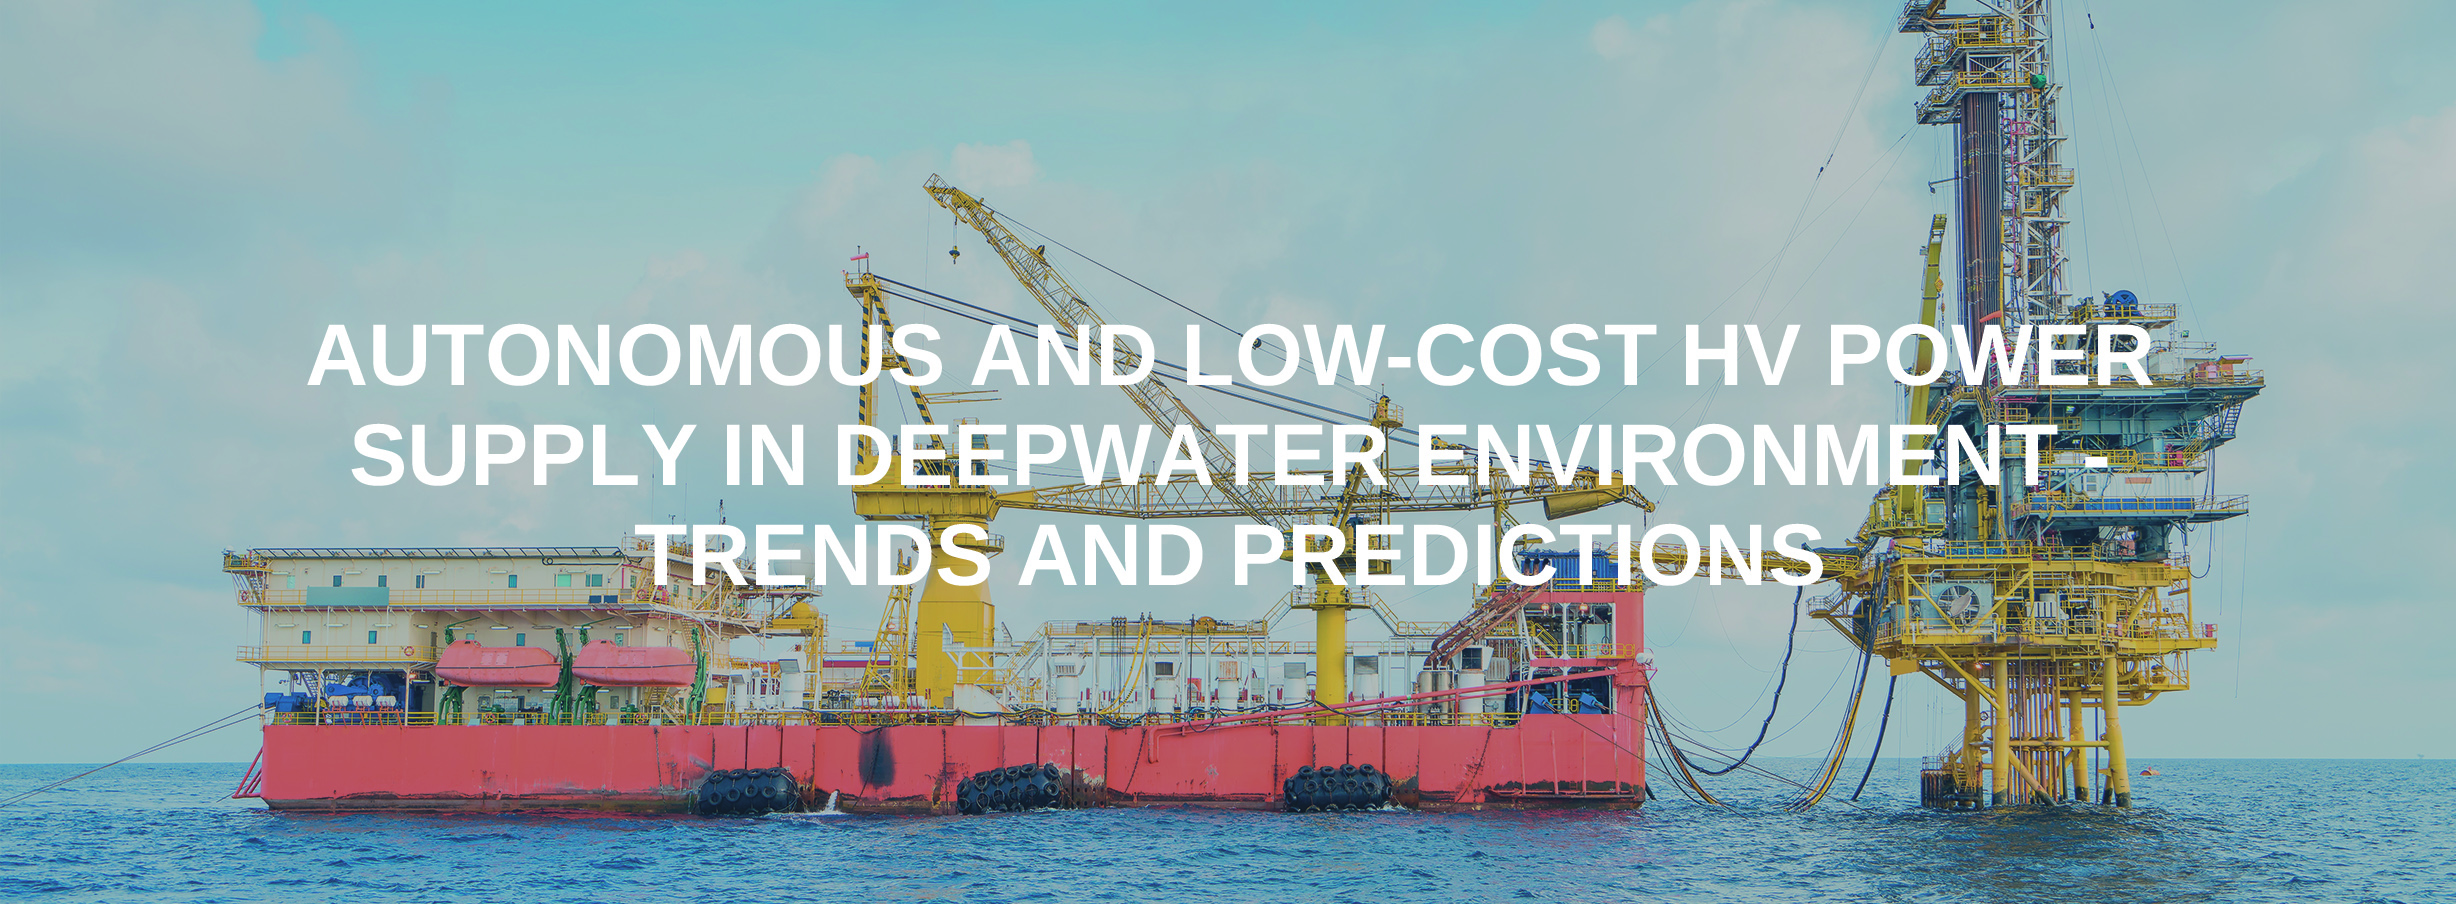 Autonomous and Low-cost HV Power Supply in Deepwater Environment